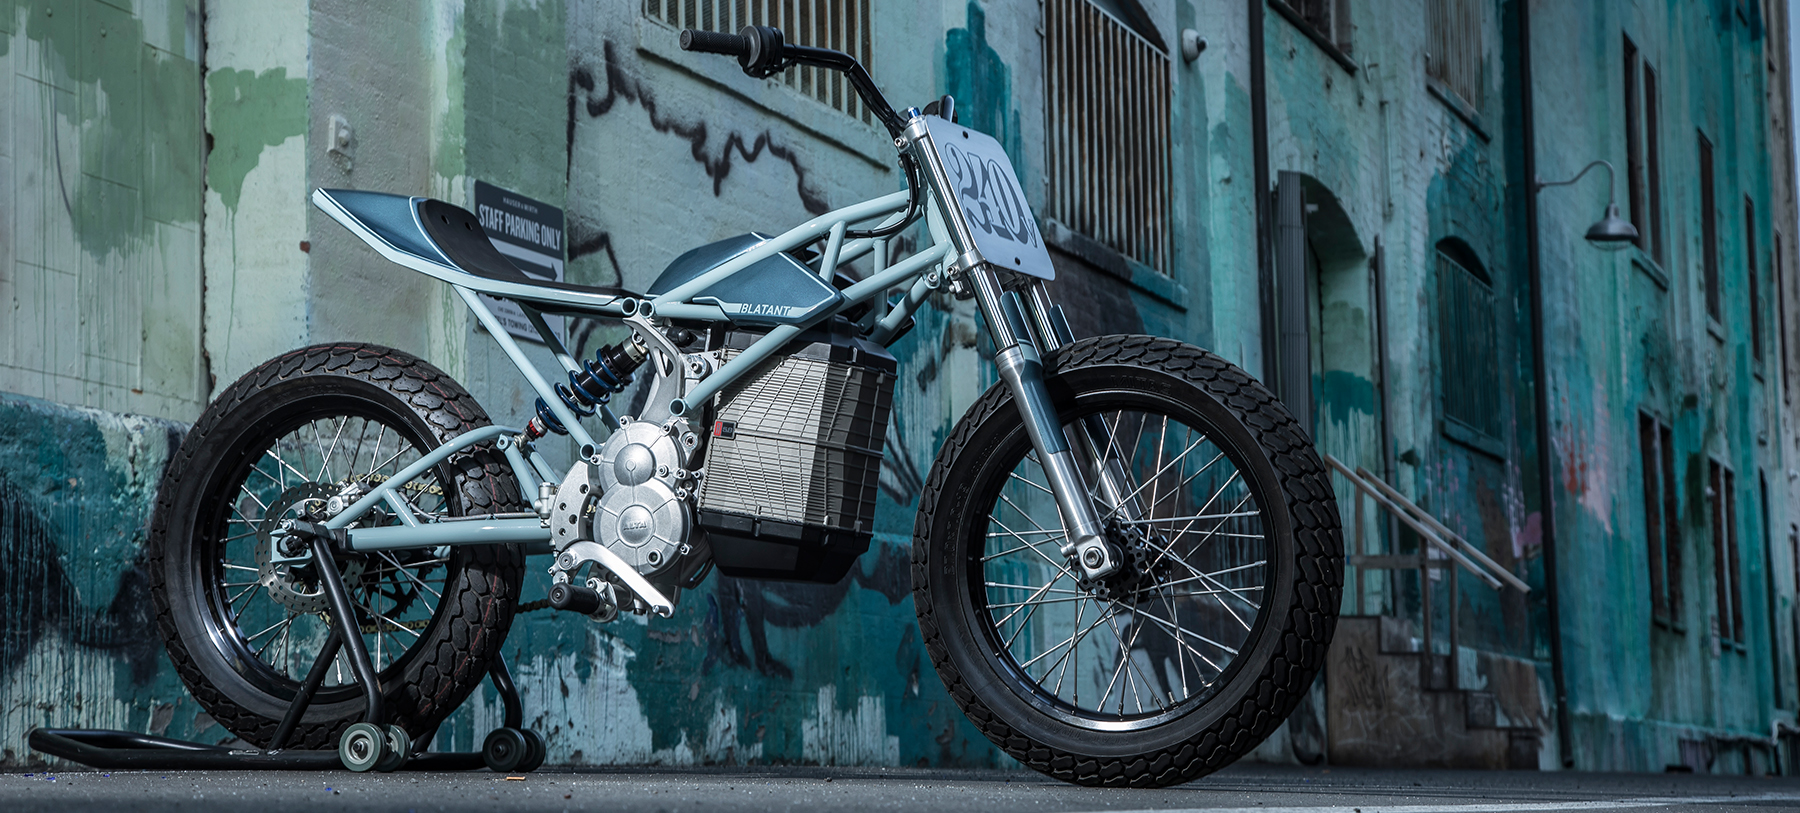 Tracker by Blantant Moto